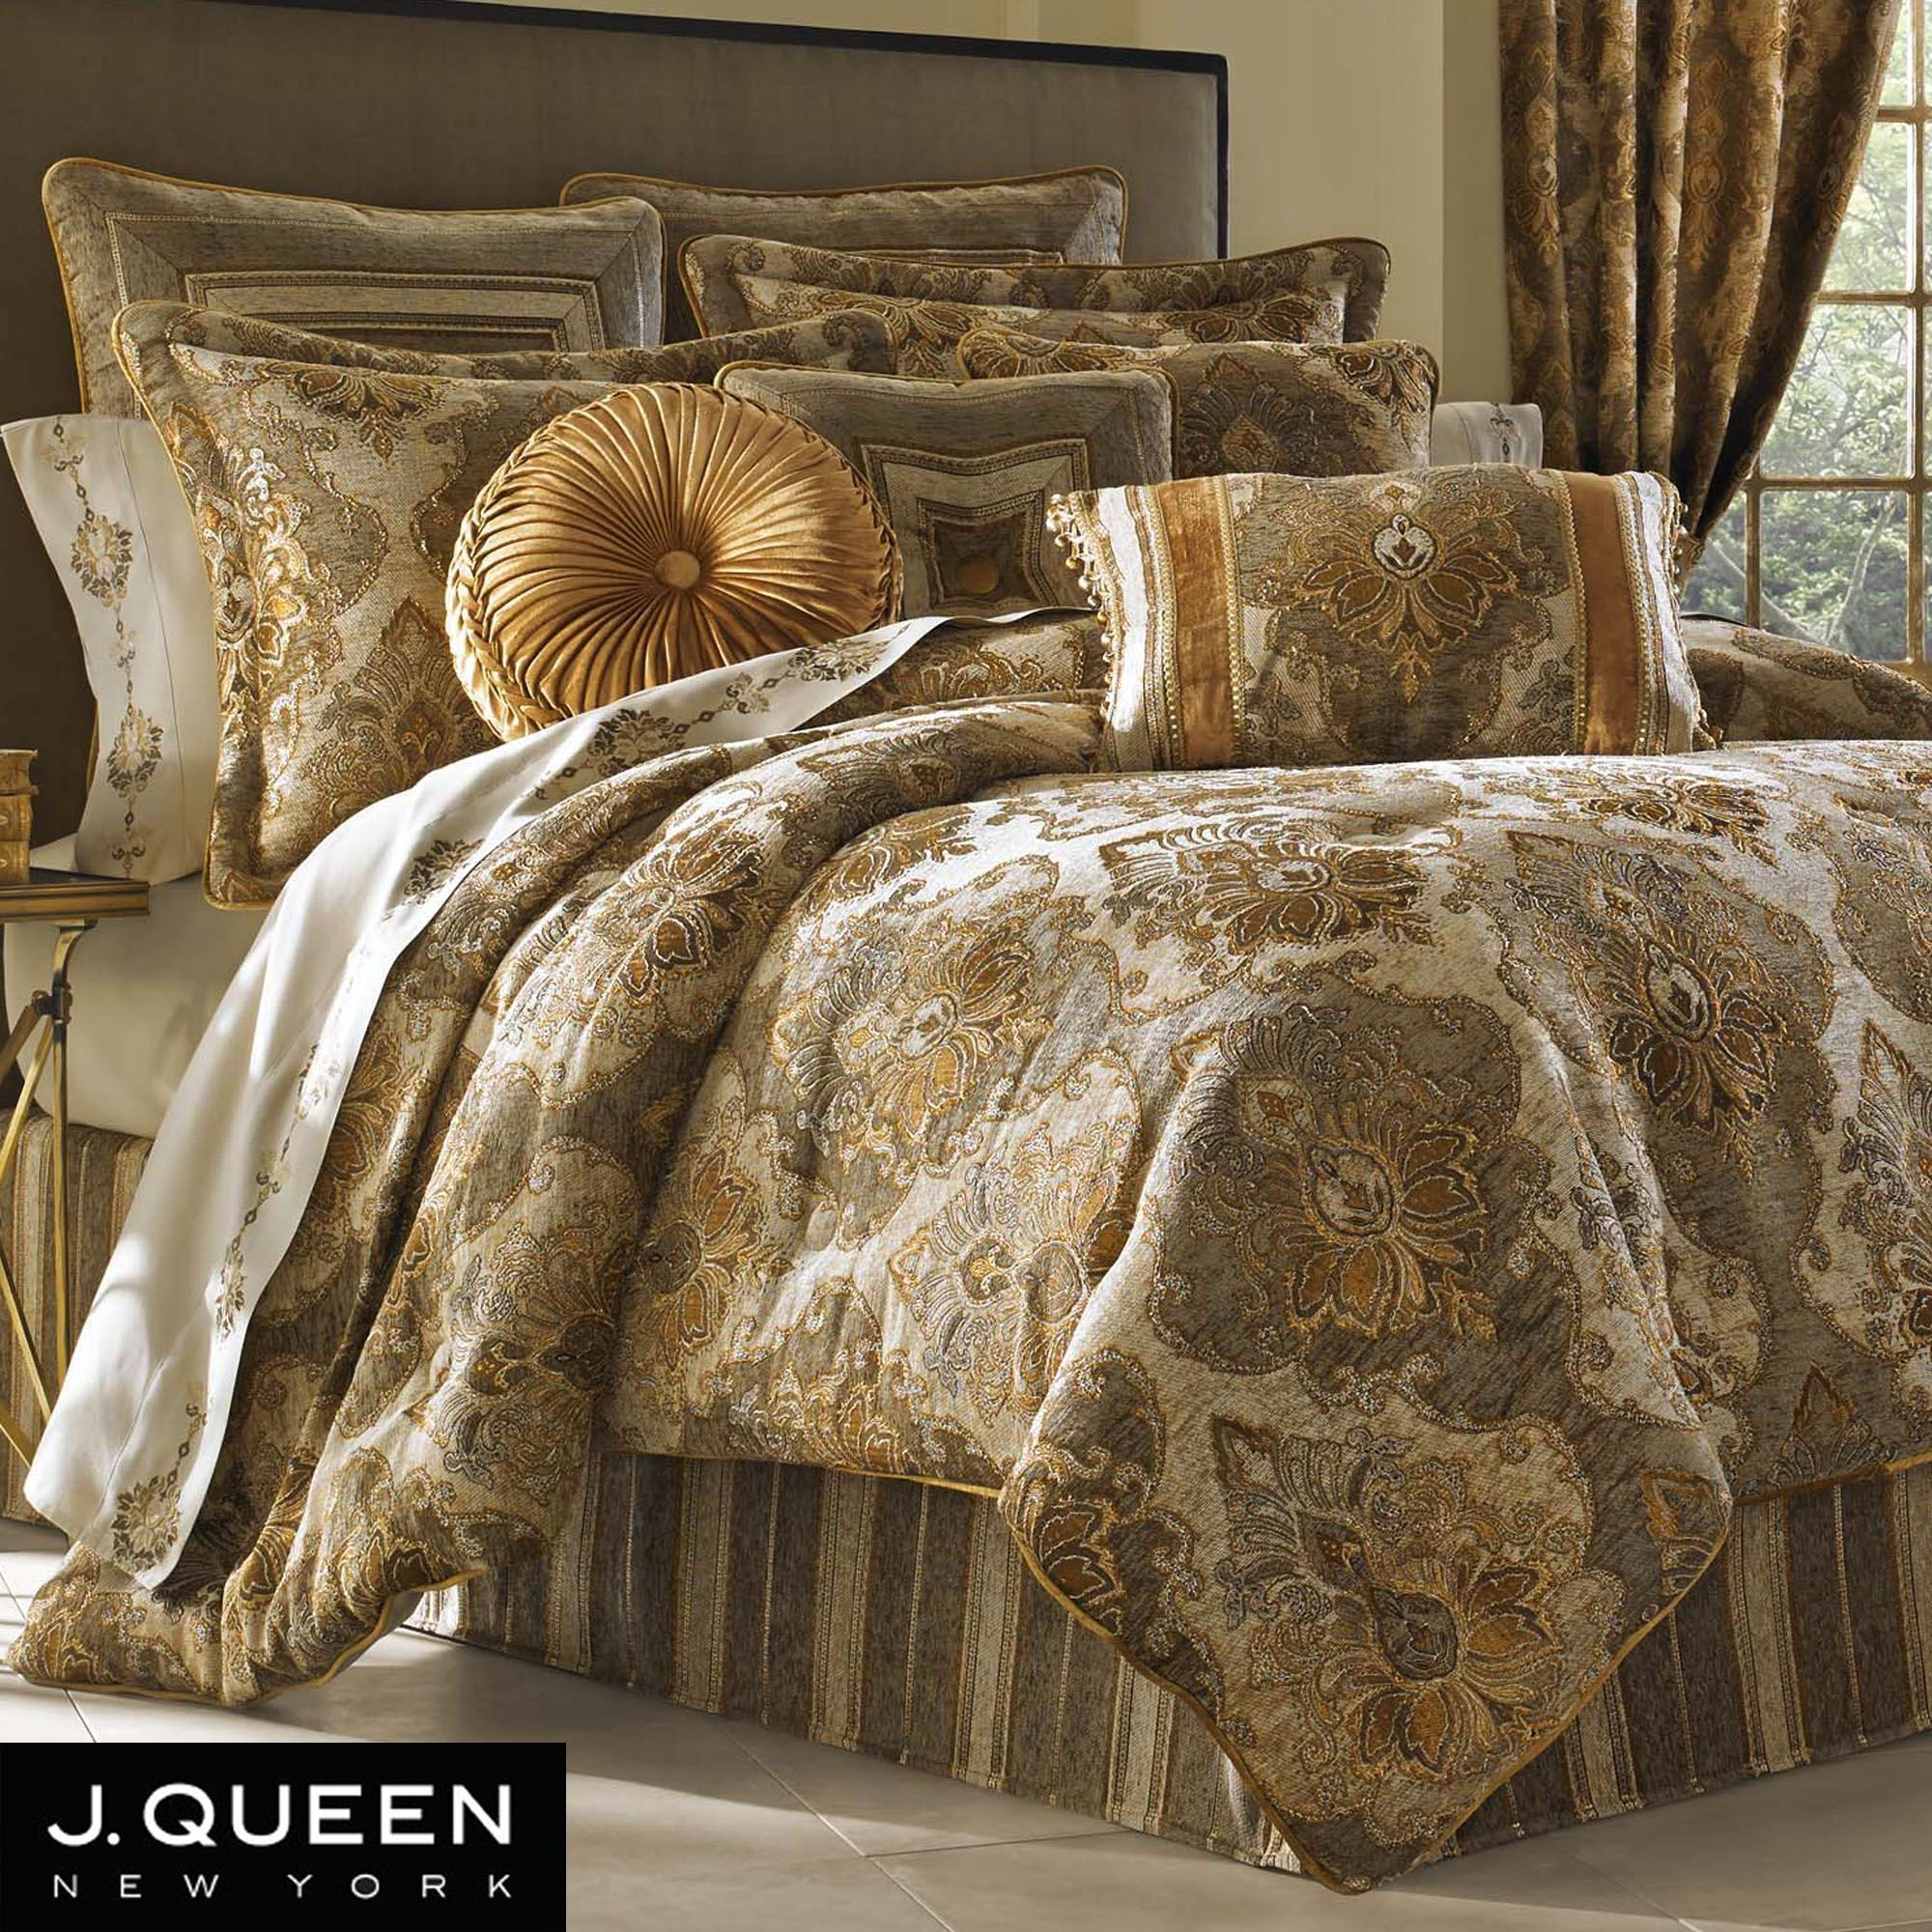 Black and gold queen comforter set - 17 Best Images About Bedroom On Pinterest Huge Master Bedroom Bedding Collections And Luxury Bedding